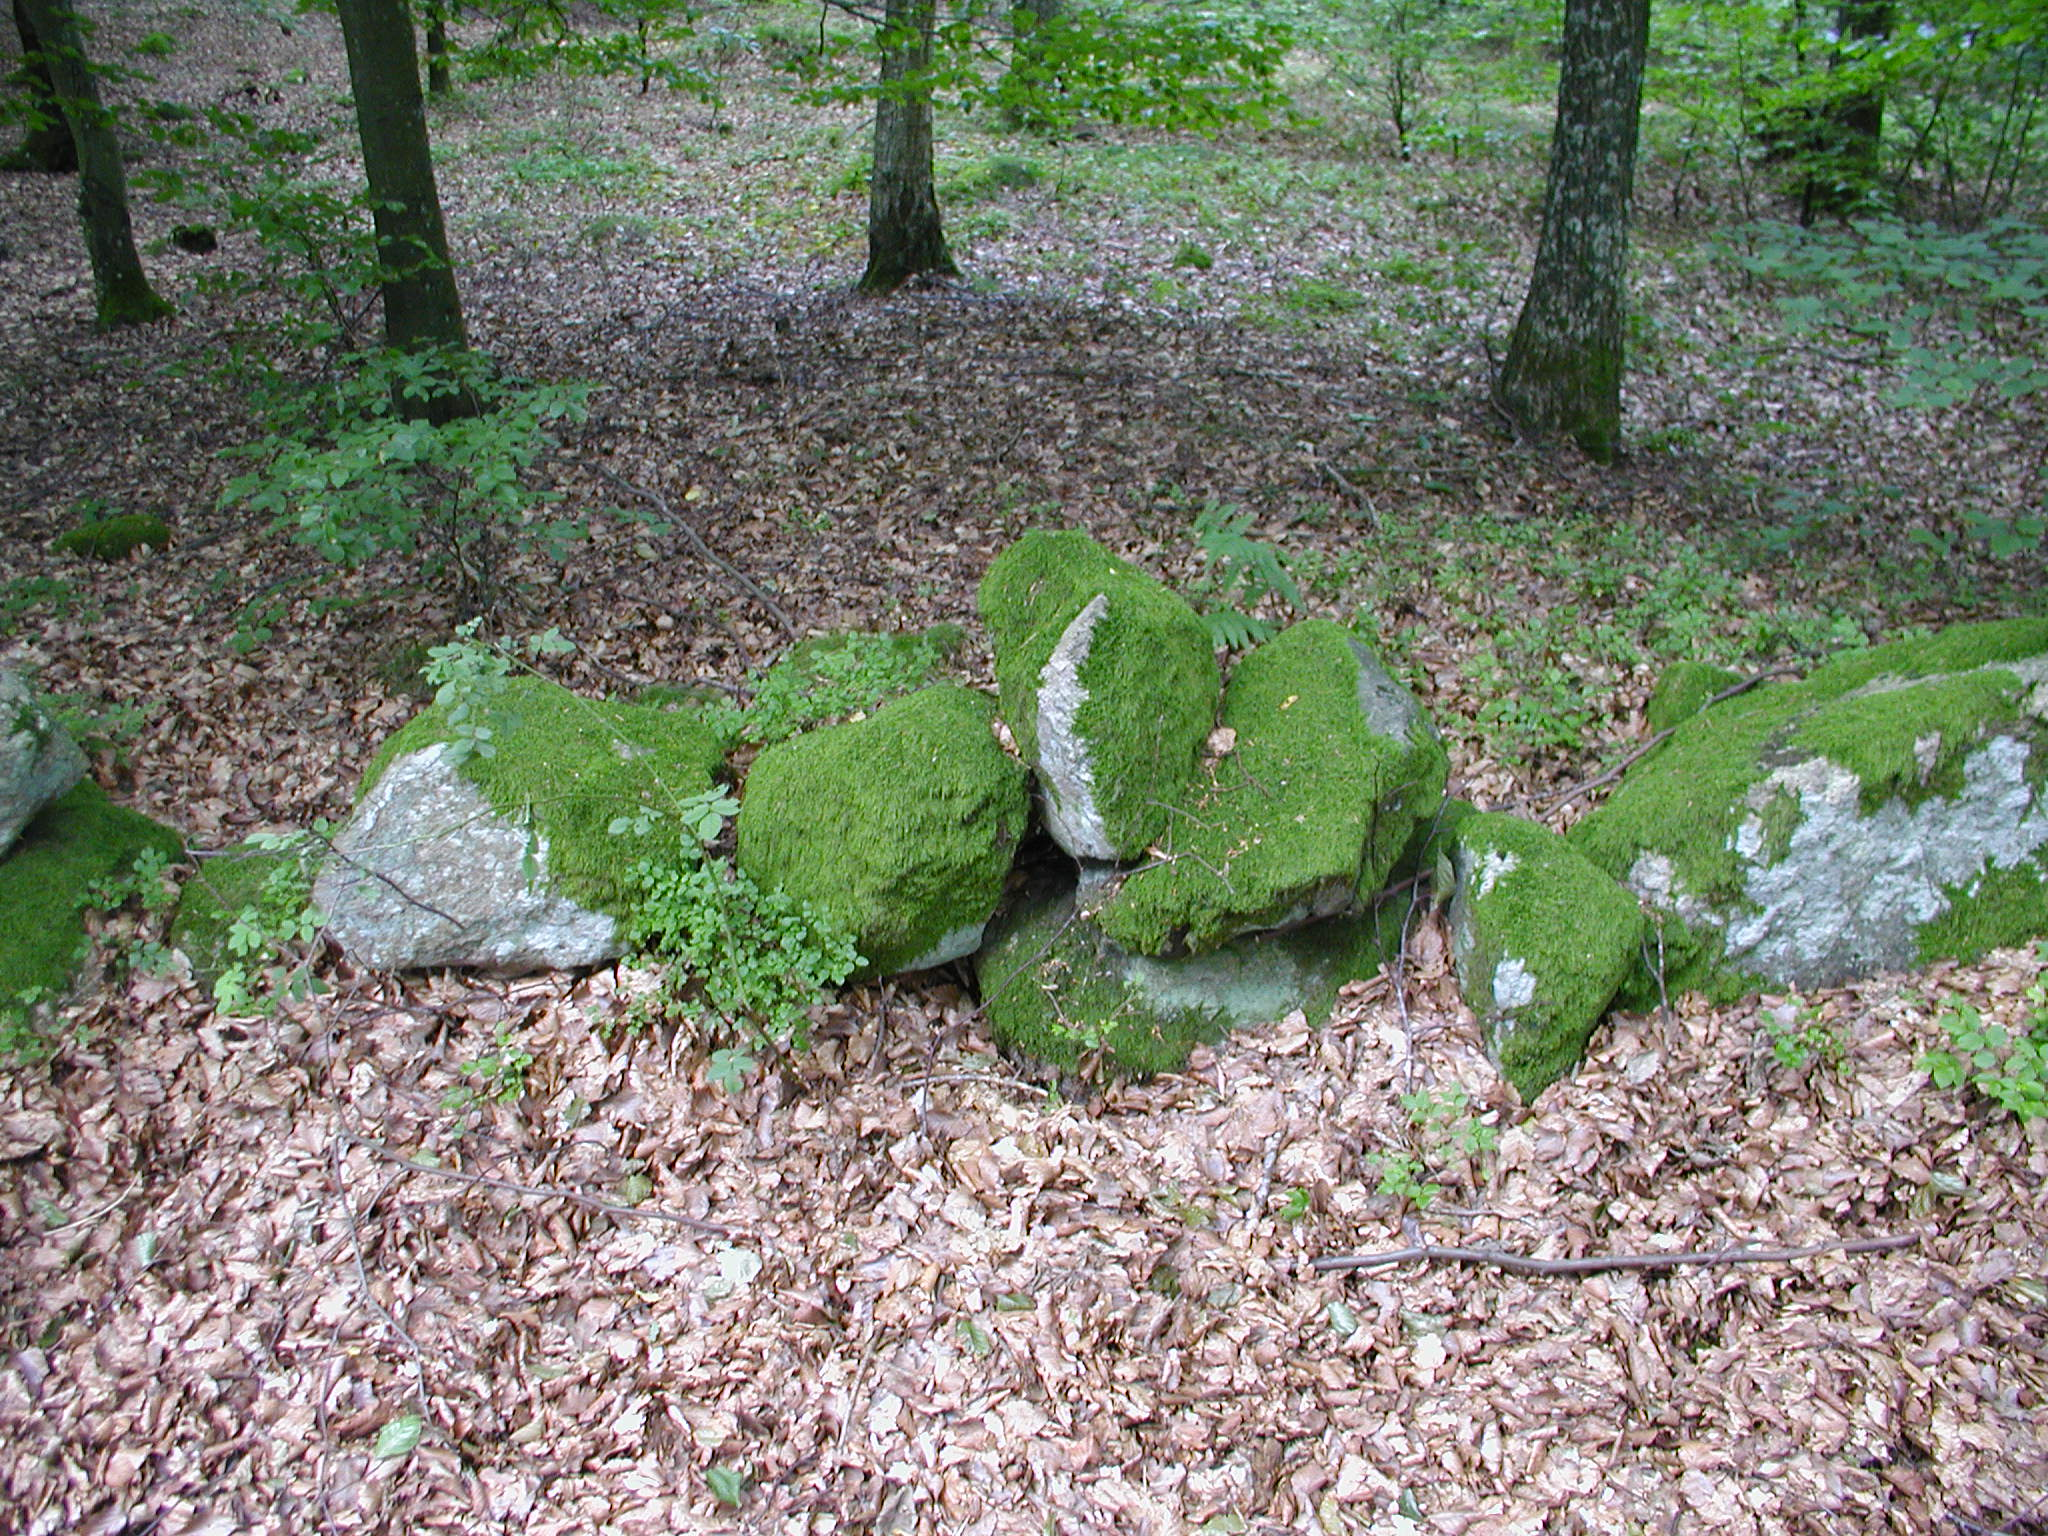 tabus rocks forest moss covered with green